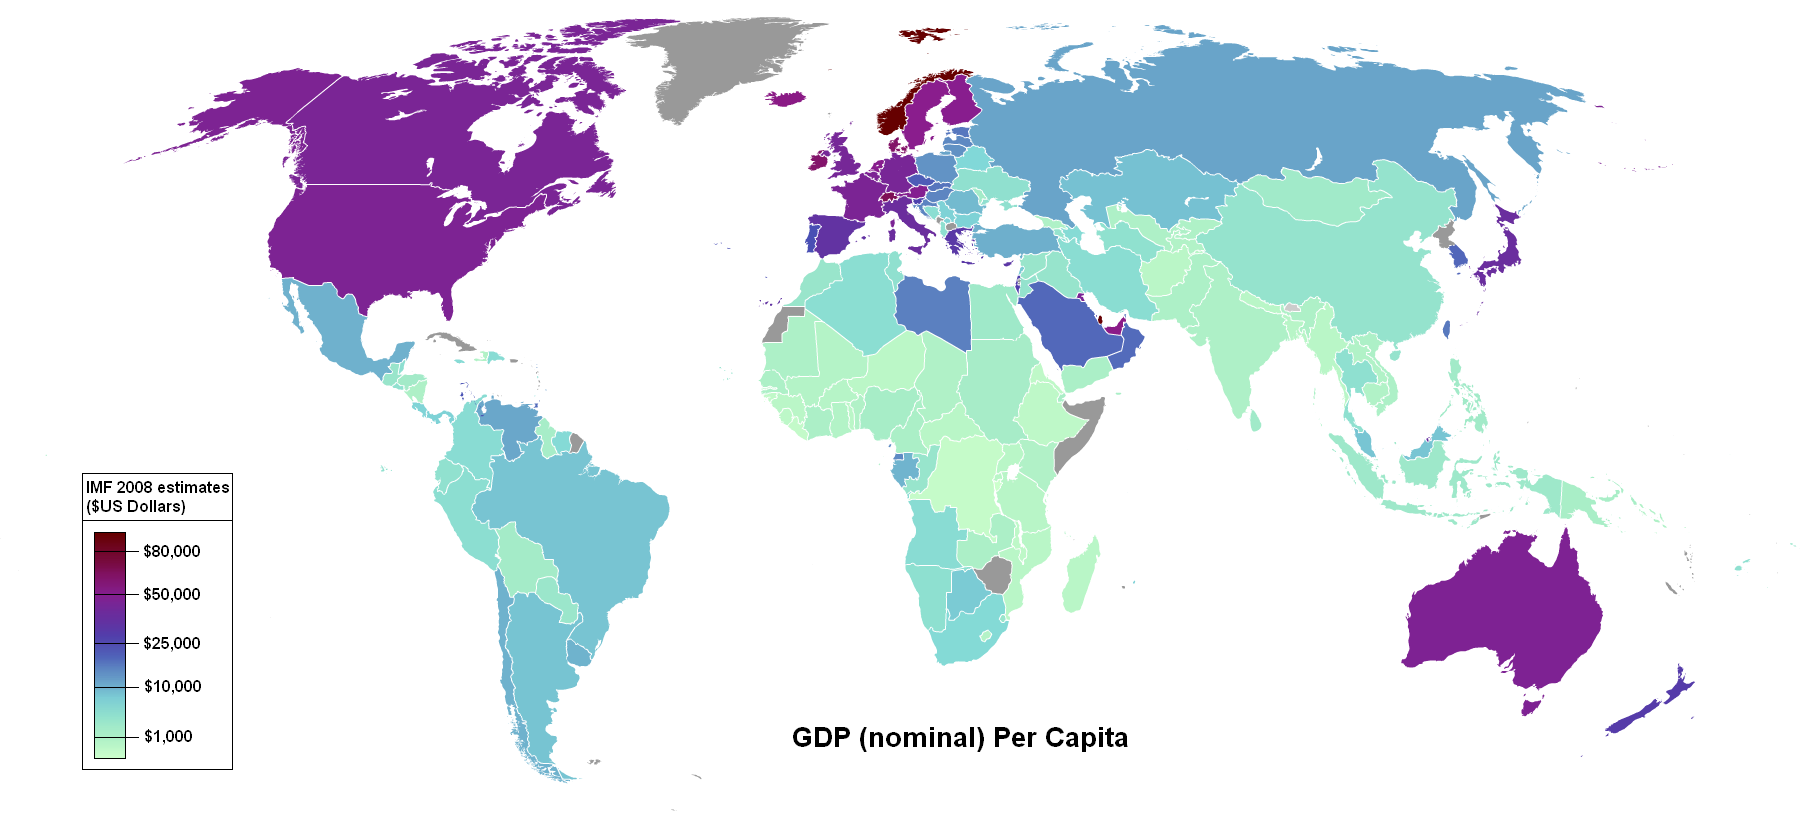 Countries by gross domestic product (GDP) per capita 2008